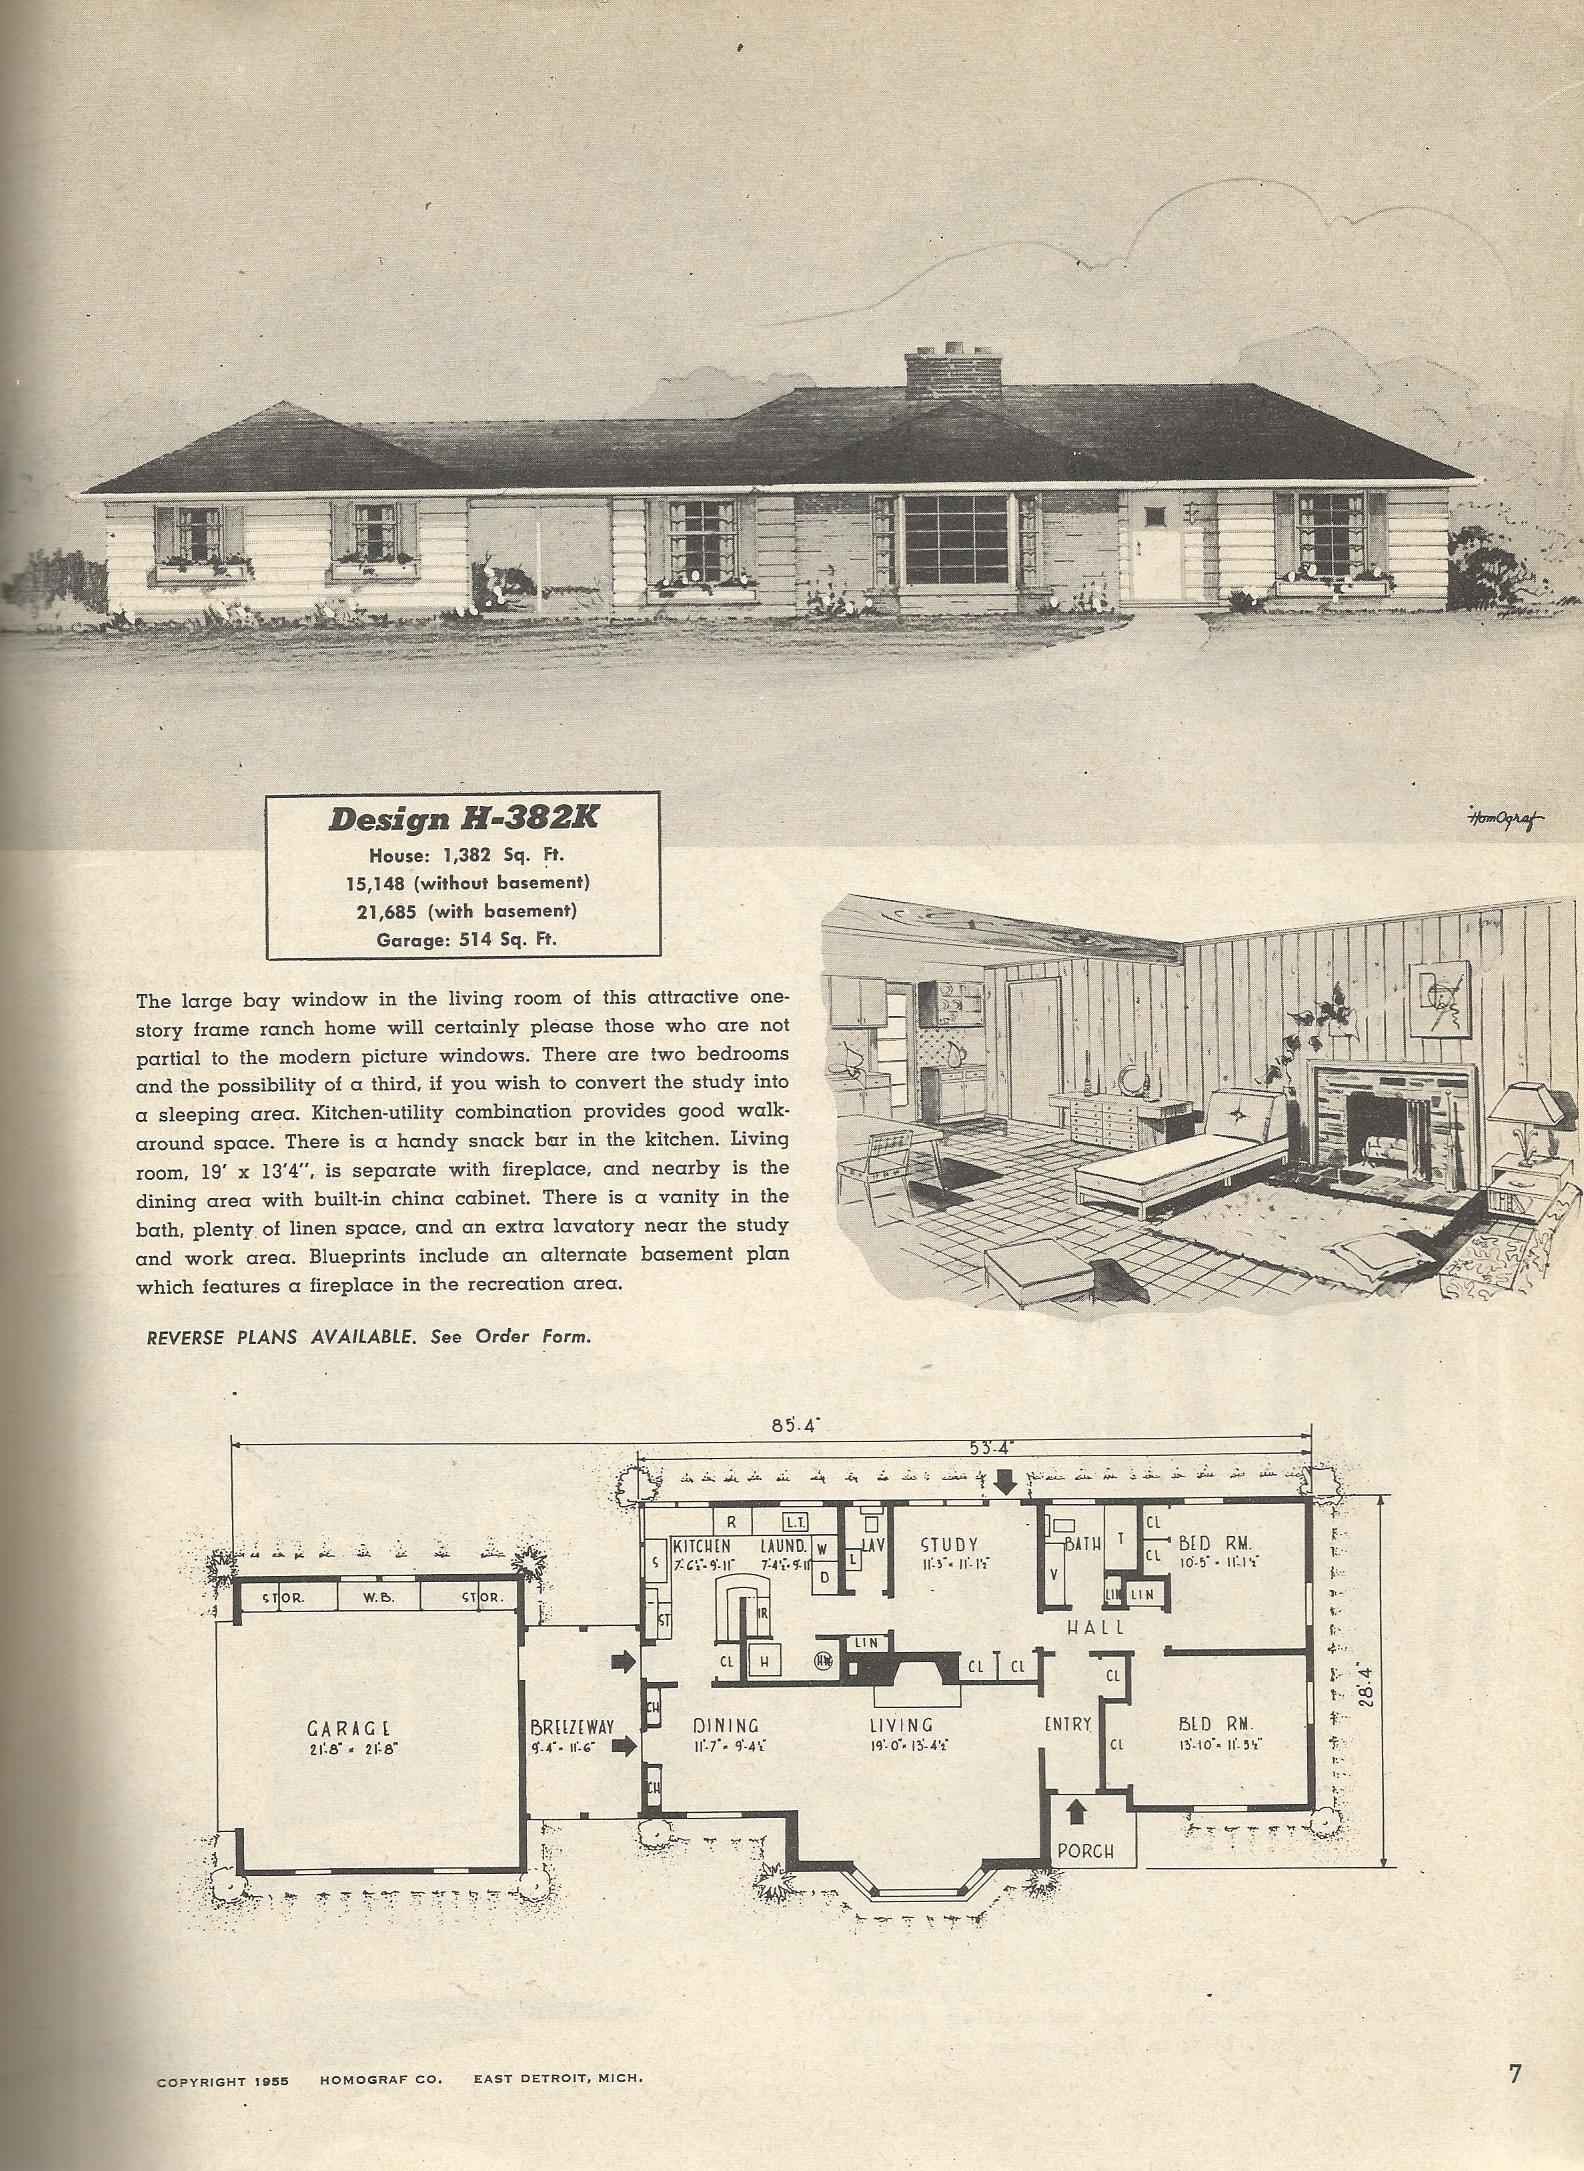 Vintage house plans 382k antique alter ego House layout design